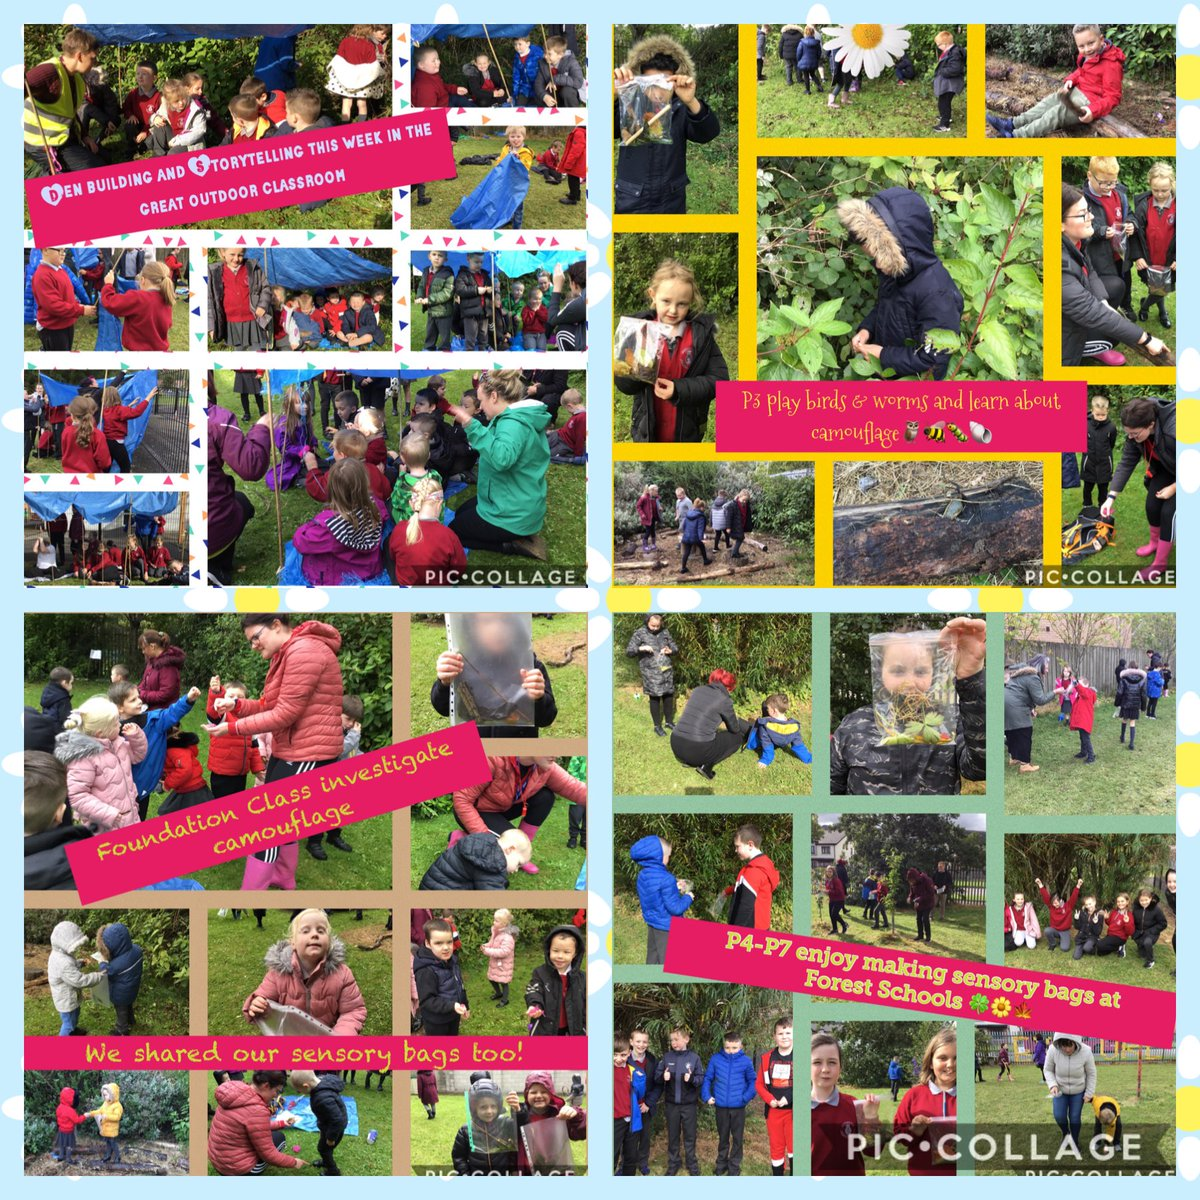 An amazing week ⁦@RathcoolePs⁩ enjoying Forest School.🐛 We are so proud of the Oracy skills of all our pupils.Great team work. Problem solving. Creativity. Numeracy. Sharing their learning. Well done to all🦔🐿  #WECAN learn outdoors ⁦@CSSC_NI⁩  ⁦@Ed_Authority⁩ https://t.co/ZNVn9SF8QG